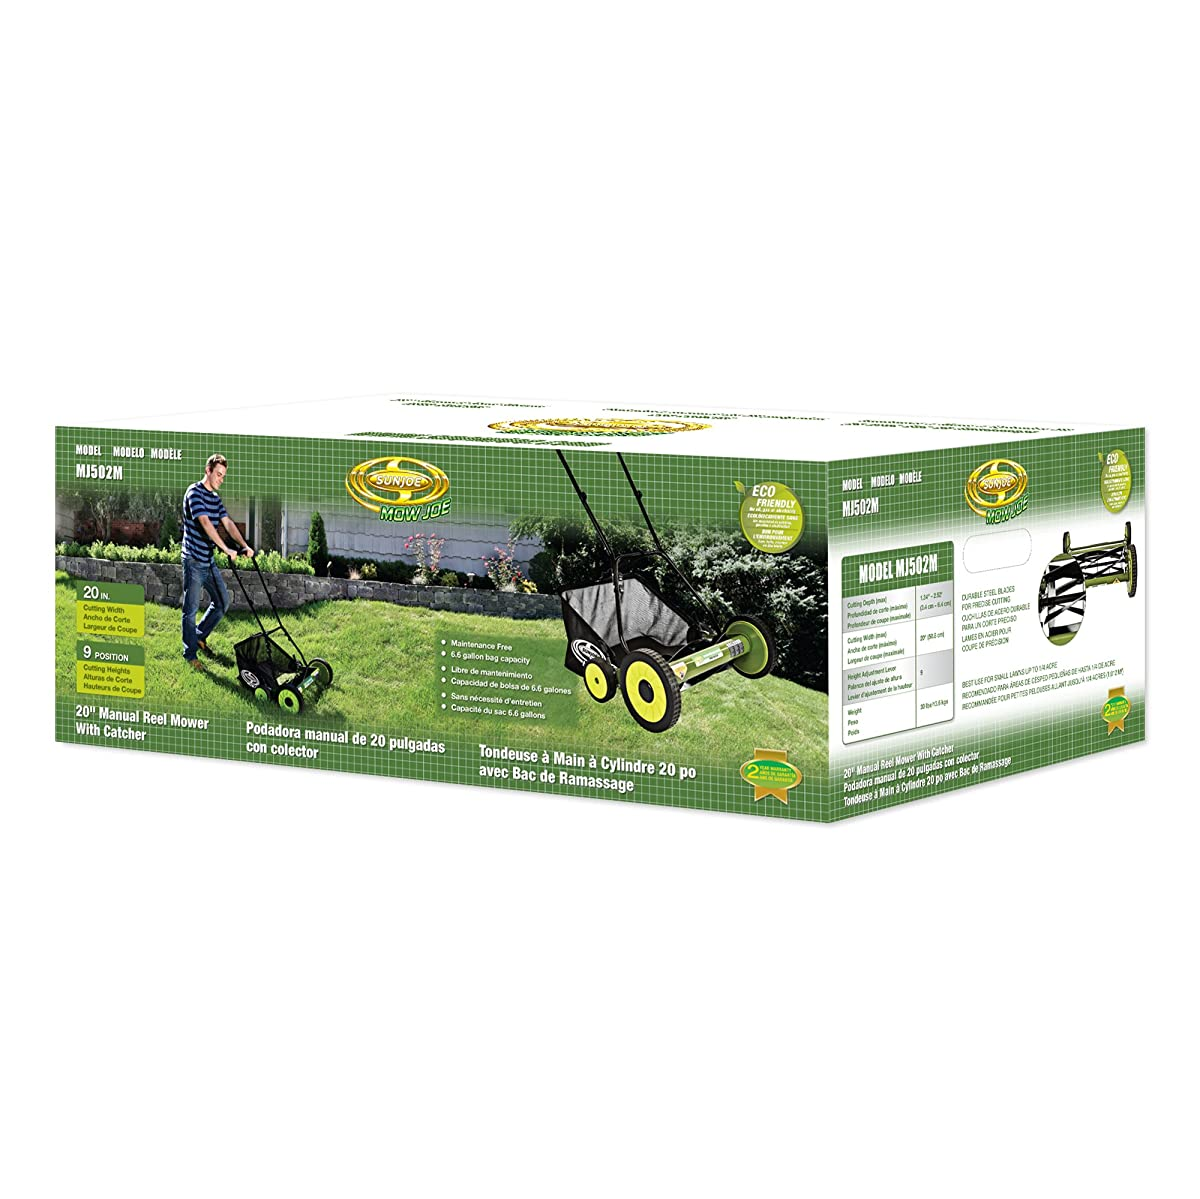 "Snow Joe MJ502M Sun Mow Joe 20"" Manual Reel Mower with Catcher, 20"", Green"